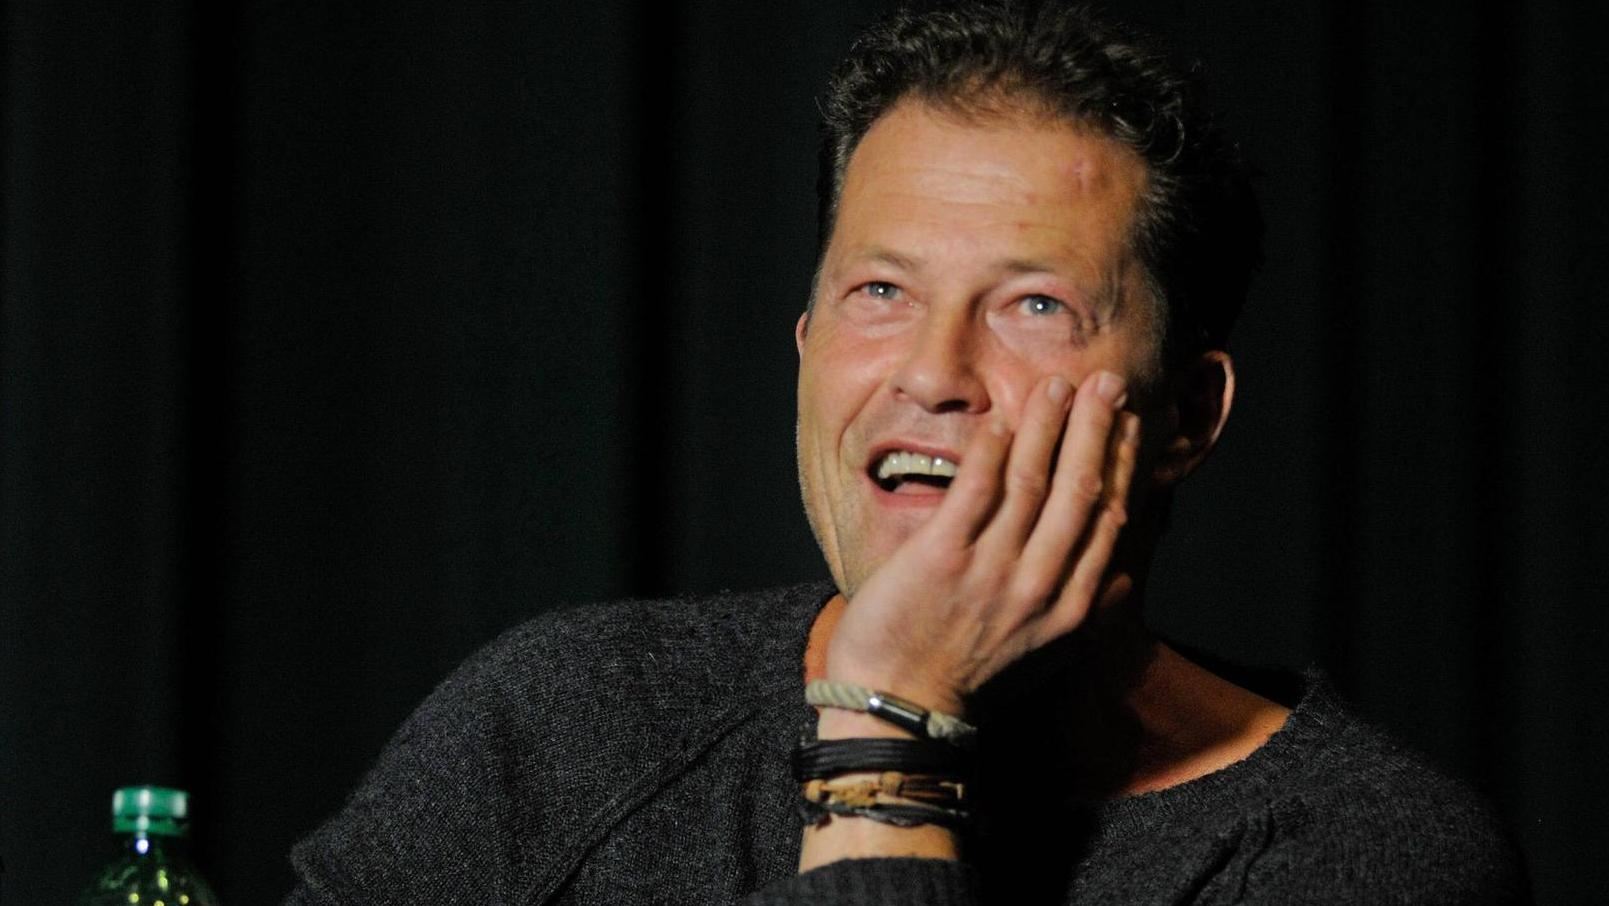 Til Schweiger Shows The Image Of His Father Similarity To